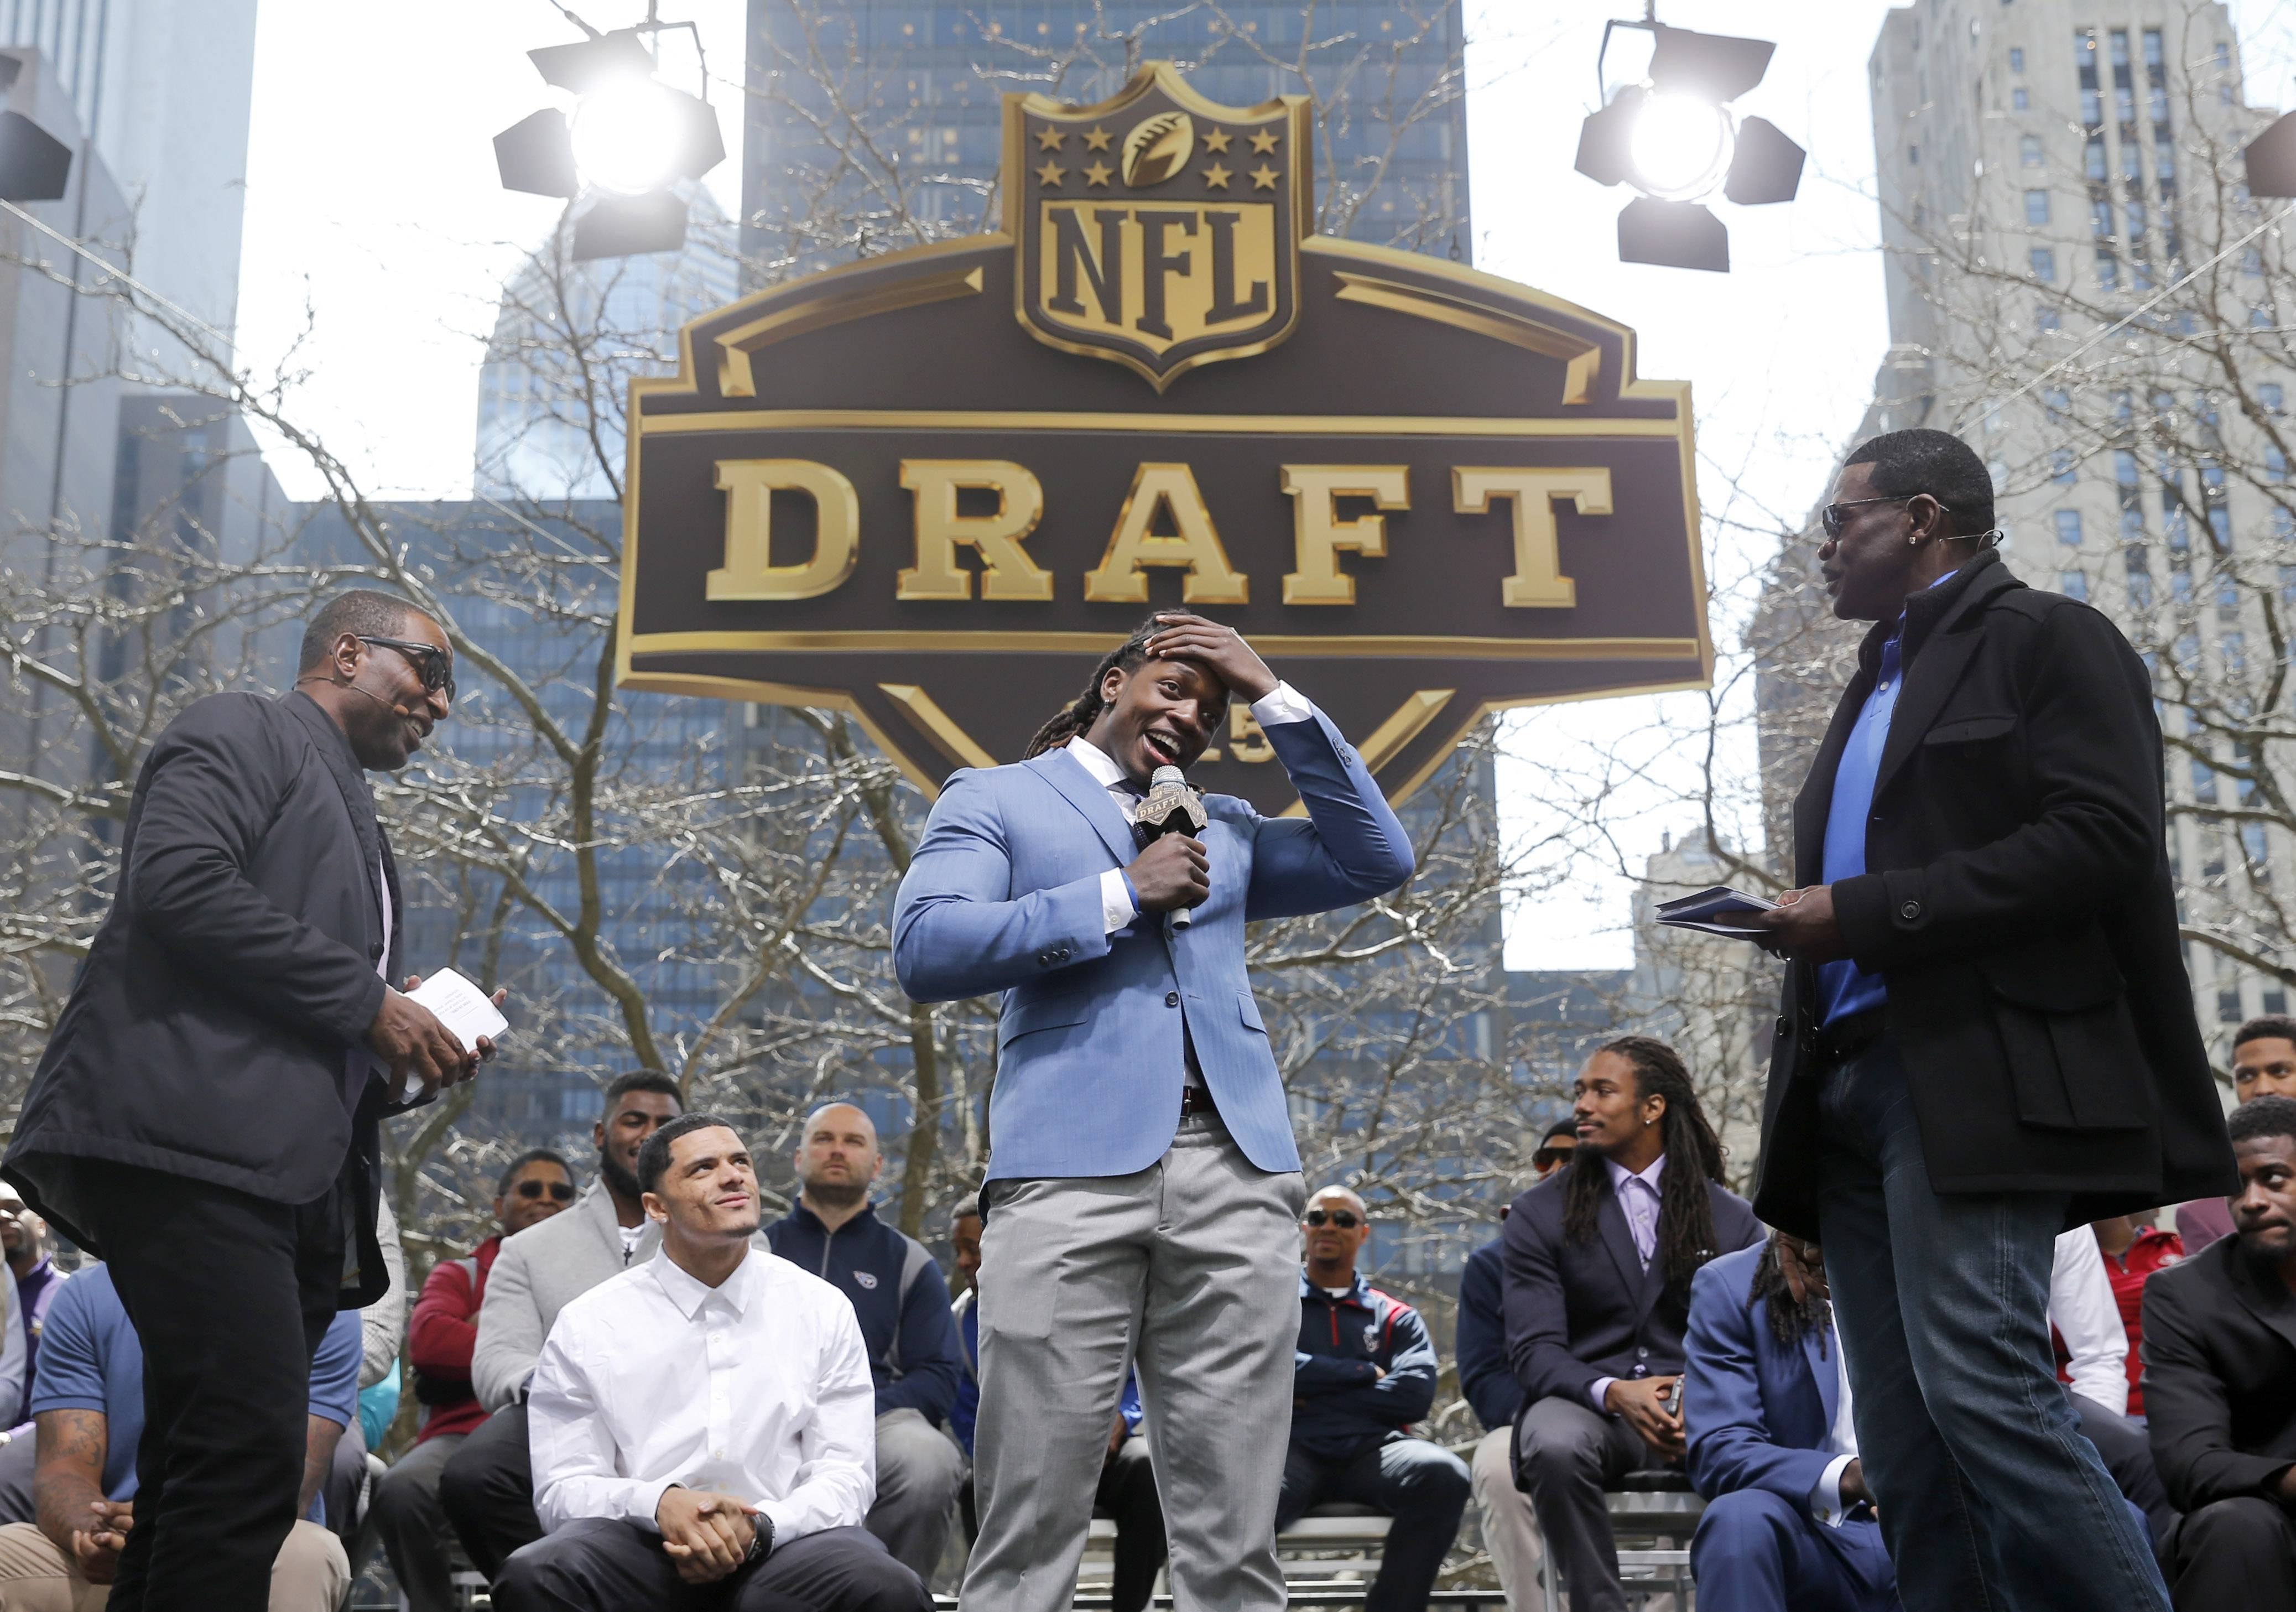 Football. Draft Town. Fun. It must be 2016 NFL Draft in Chicago